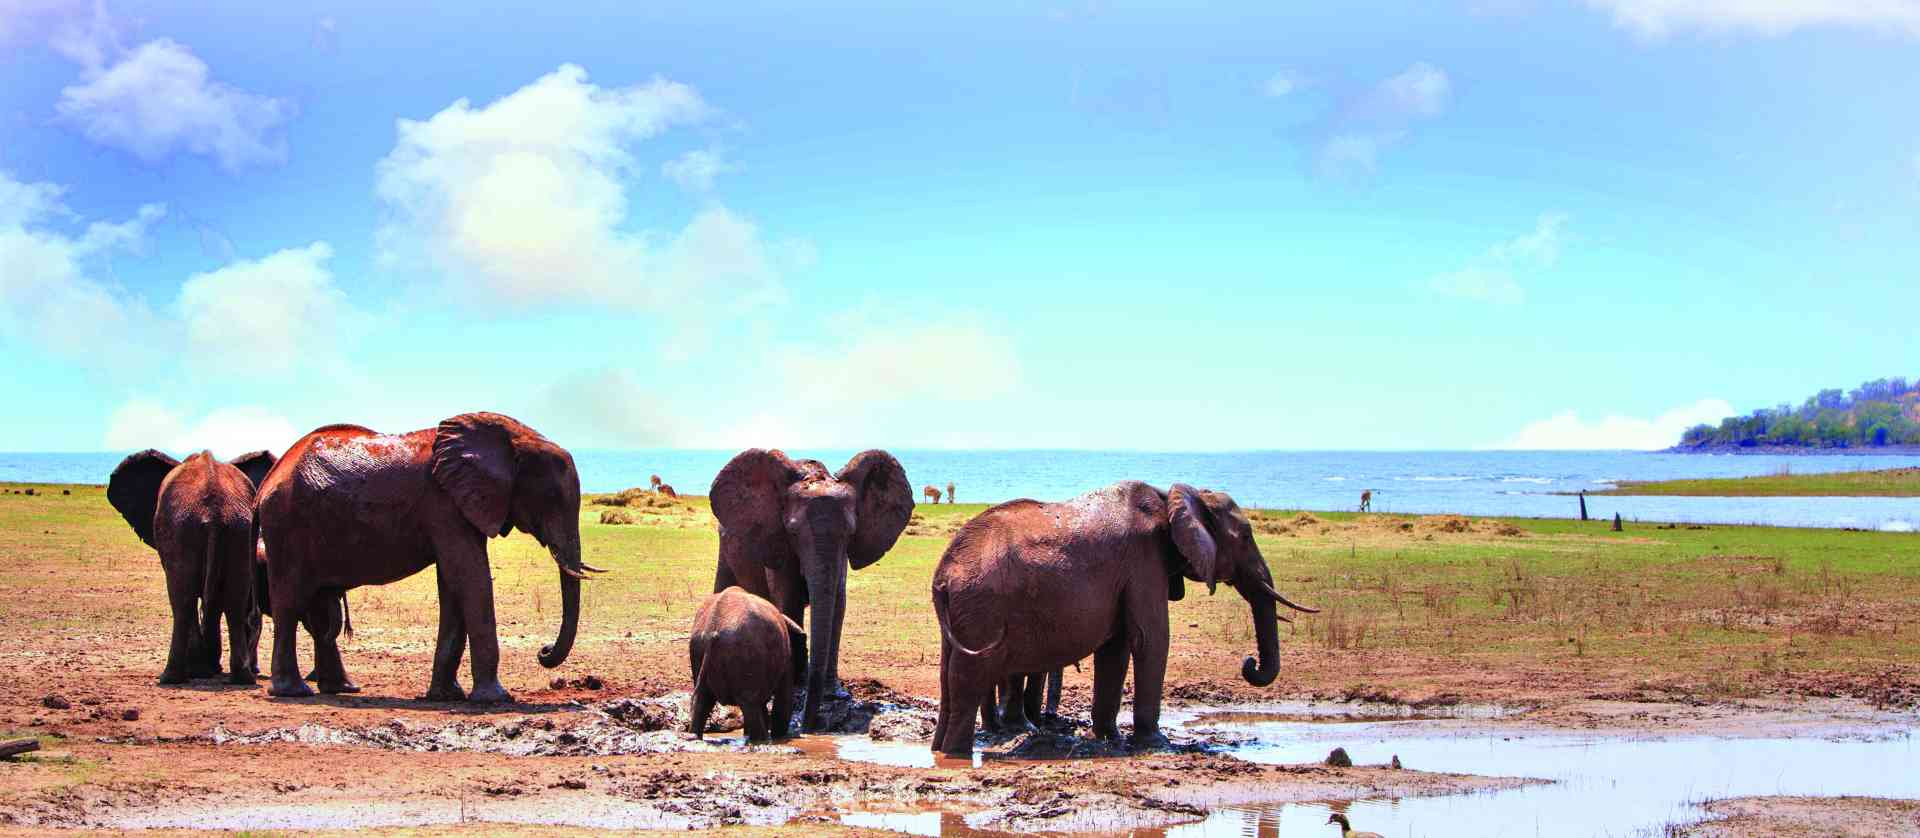 Elephants in Lake Kariba, Zimbabwe